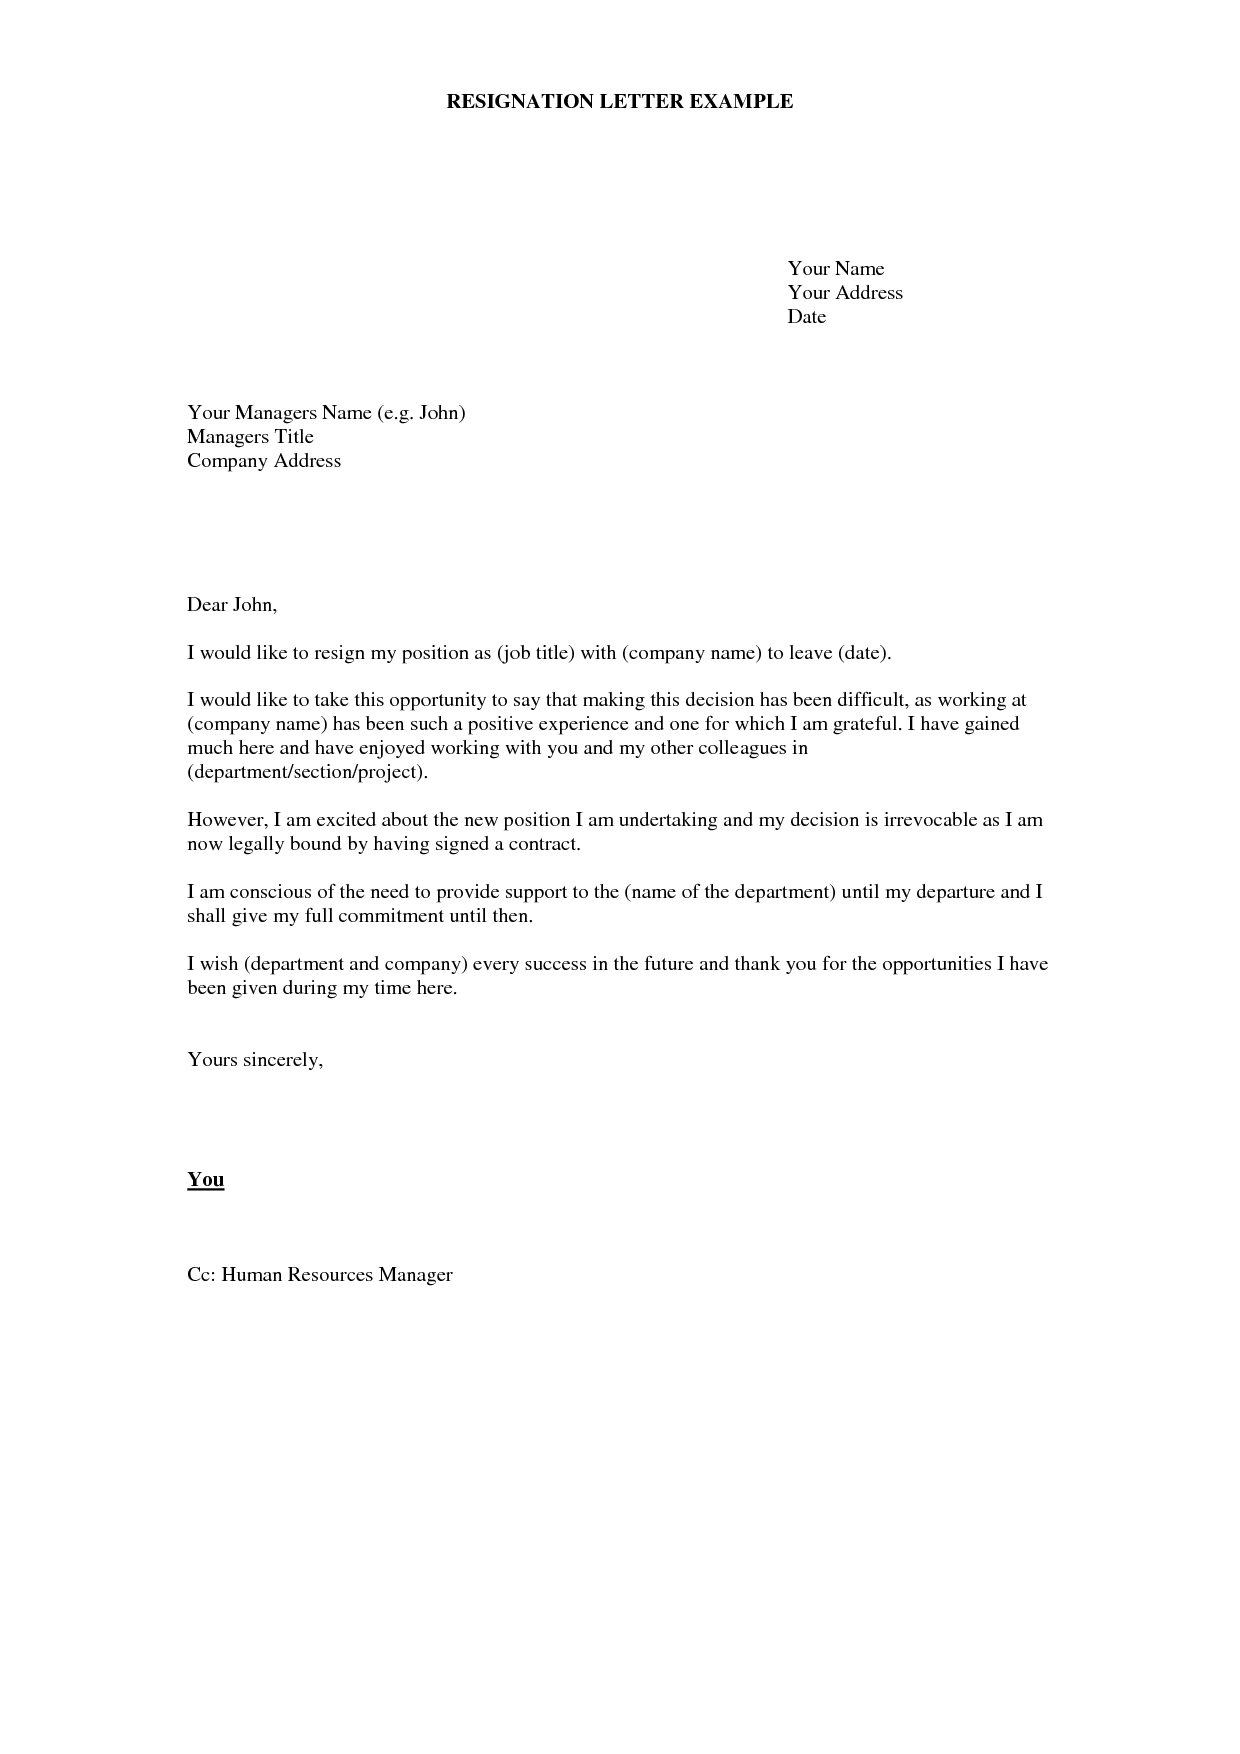 Cover Letter For Resignation Letter